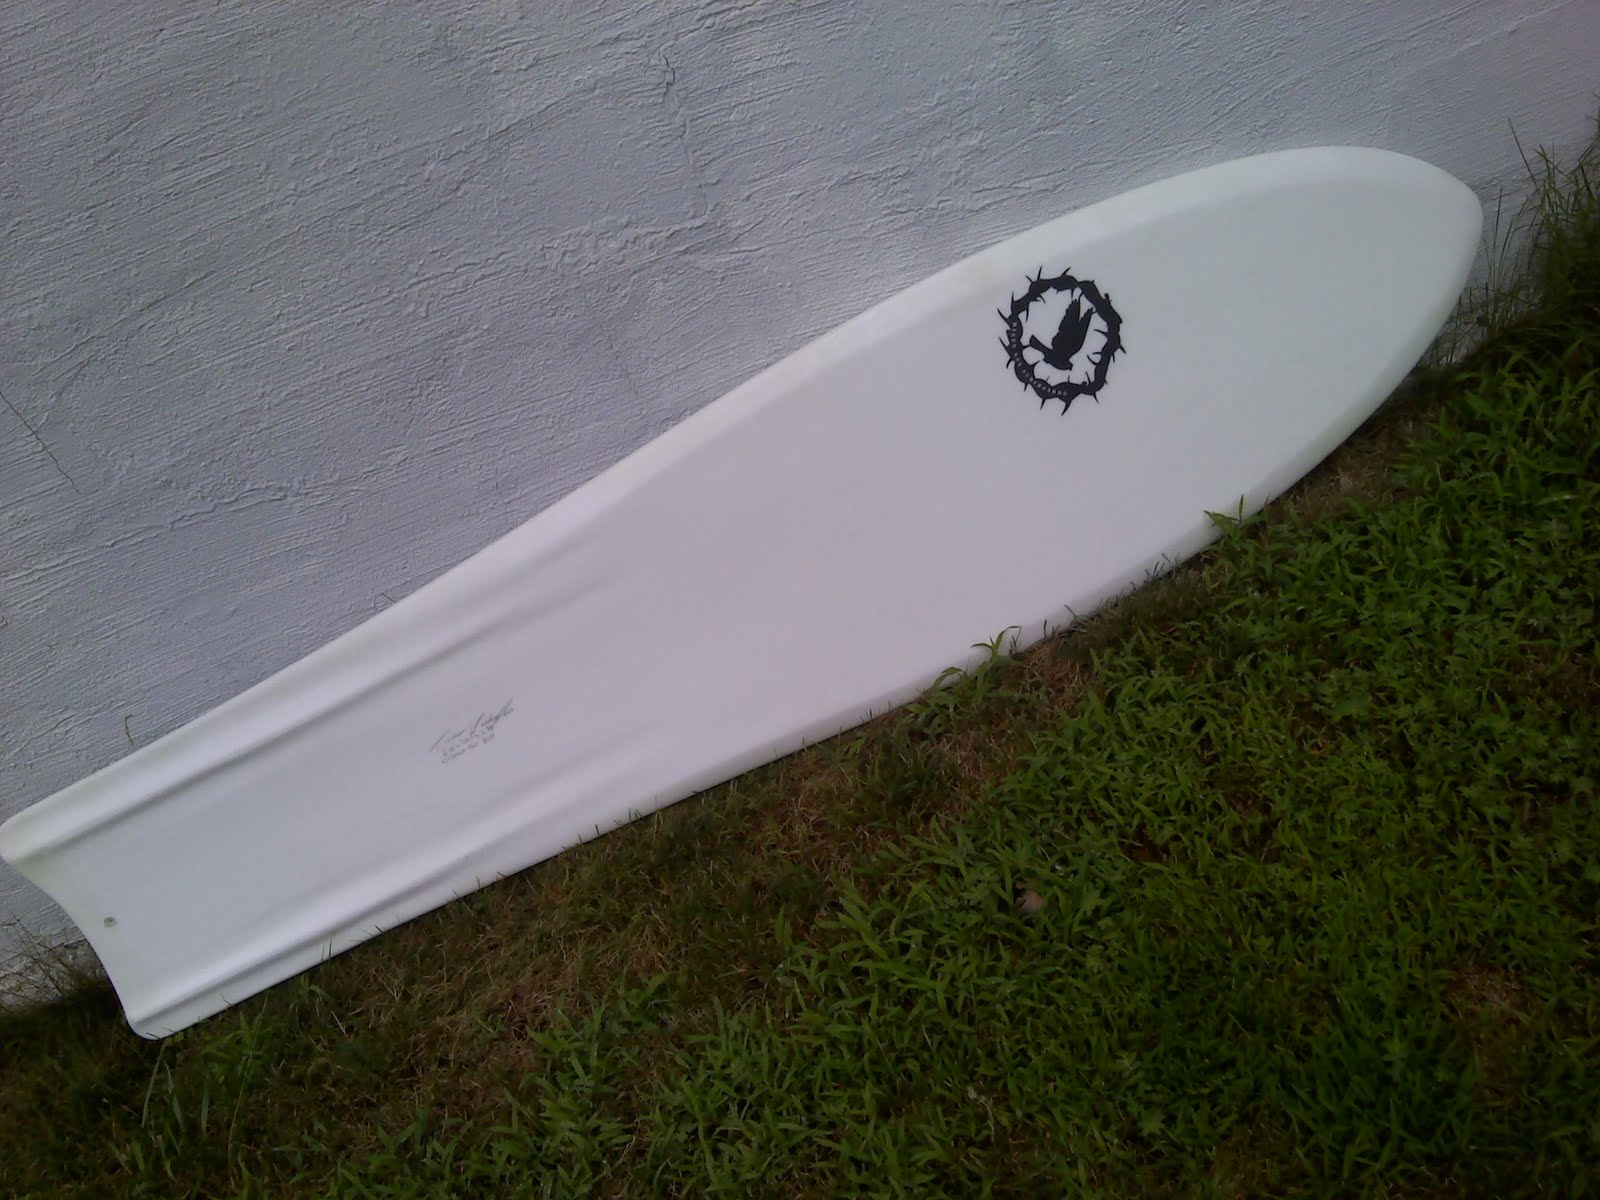 skimboard template - risen sun surfboards and skimboard manufacturing new